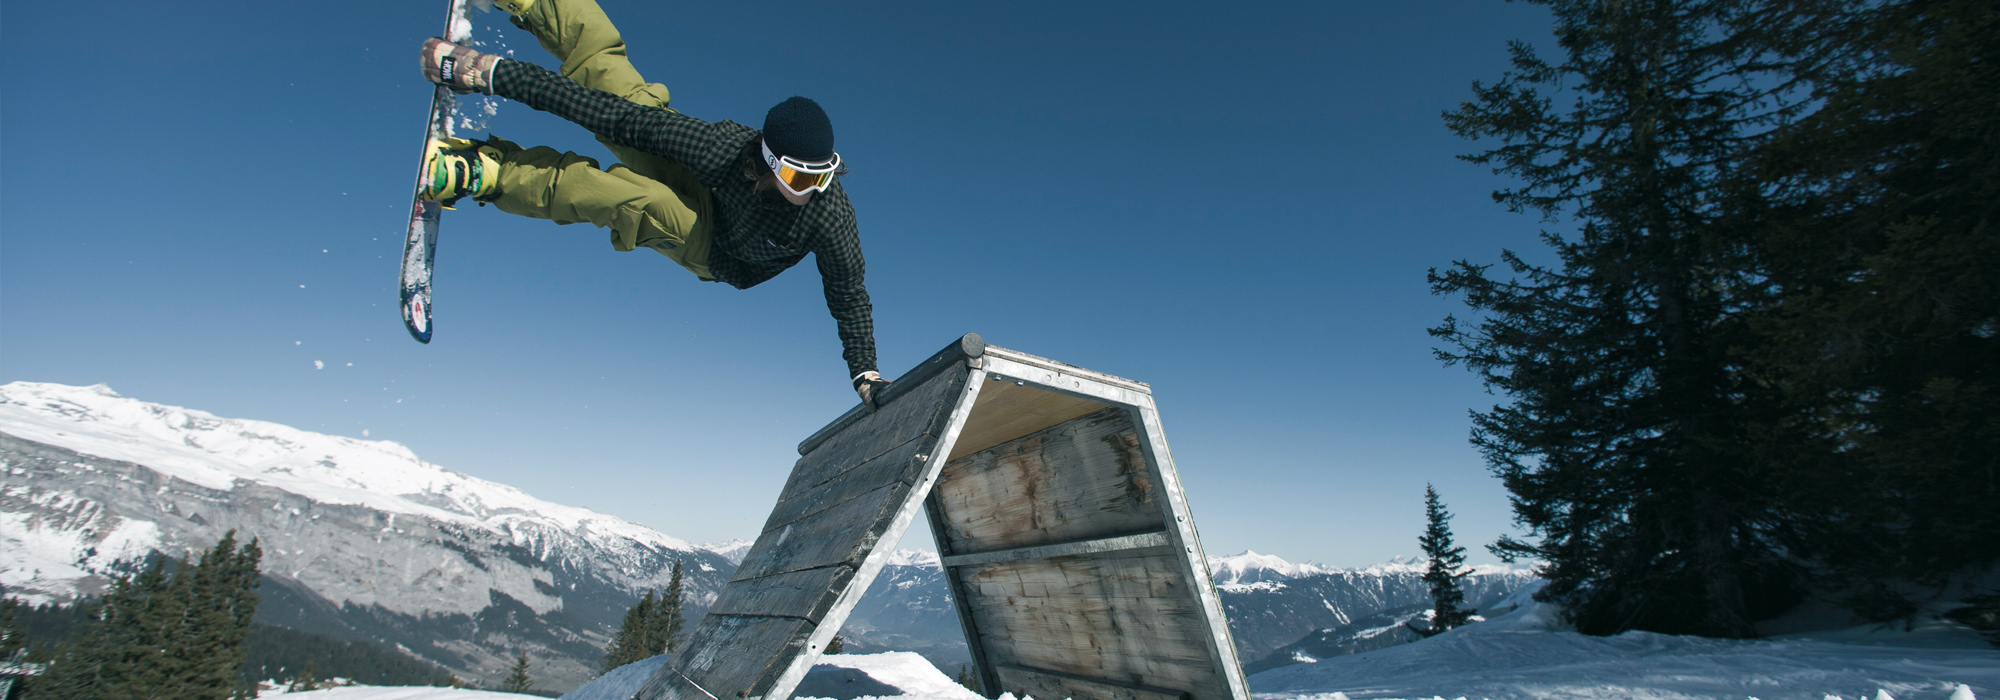 Skiferien Laax/Flims Freestyle Snowboard